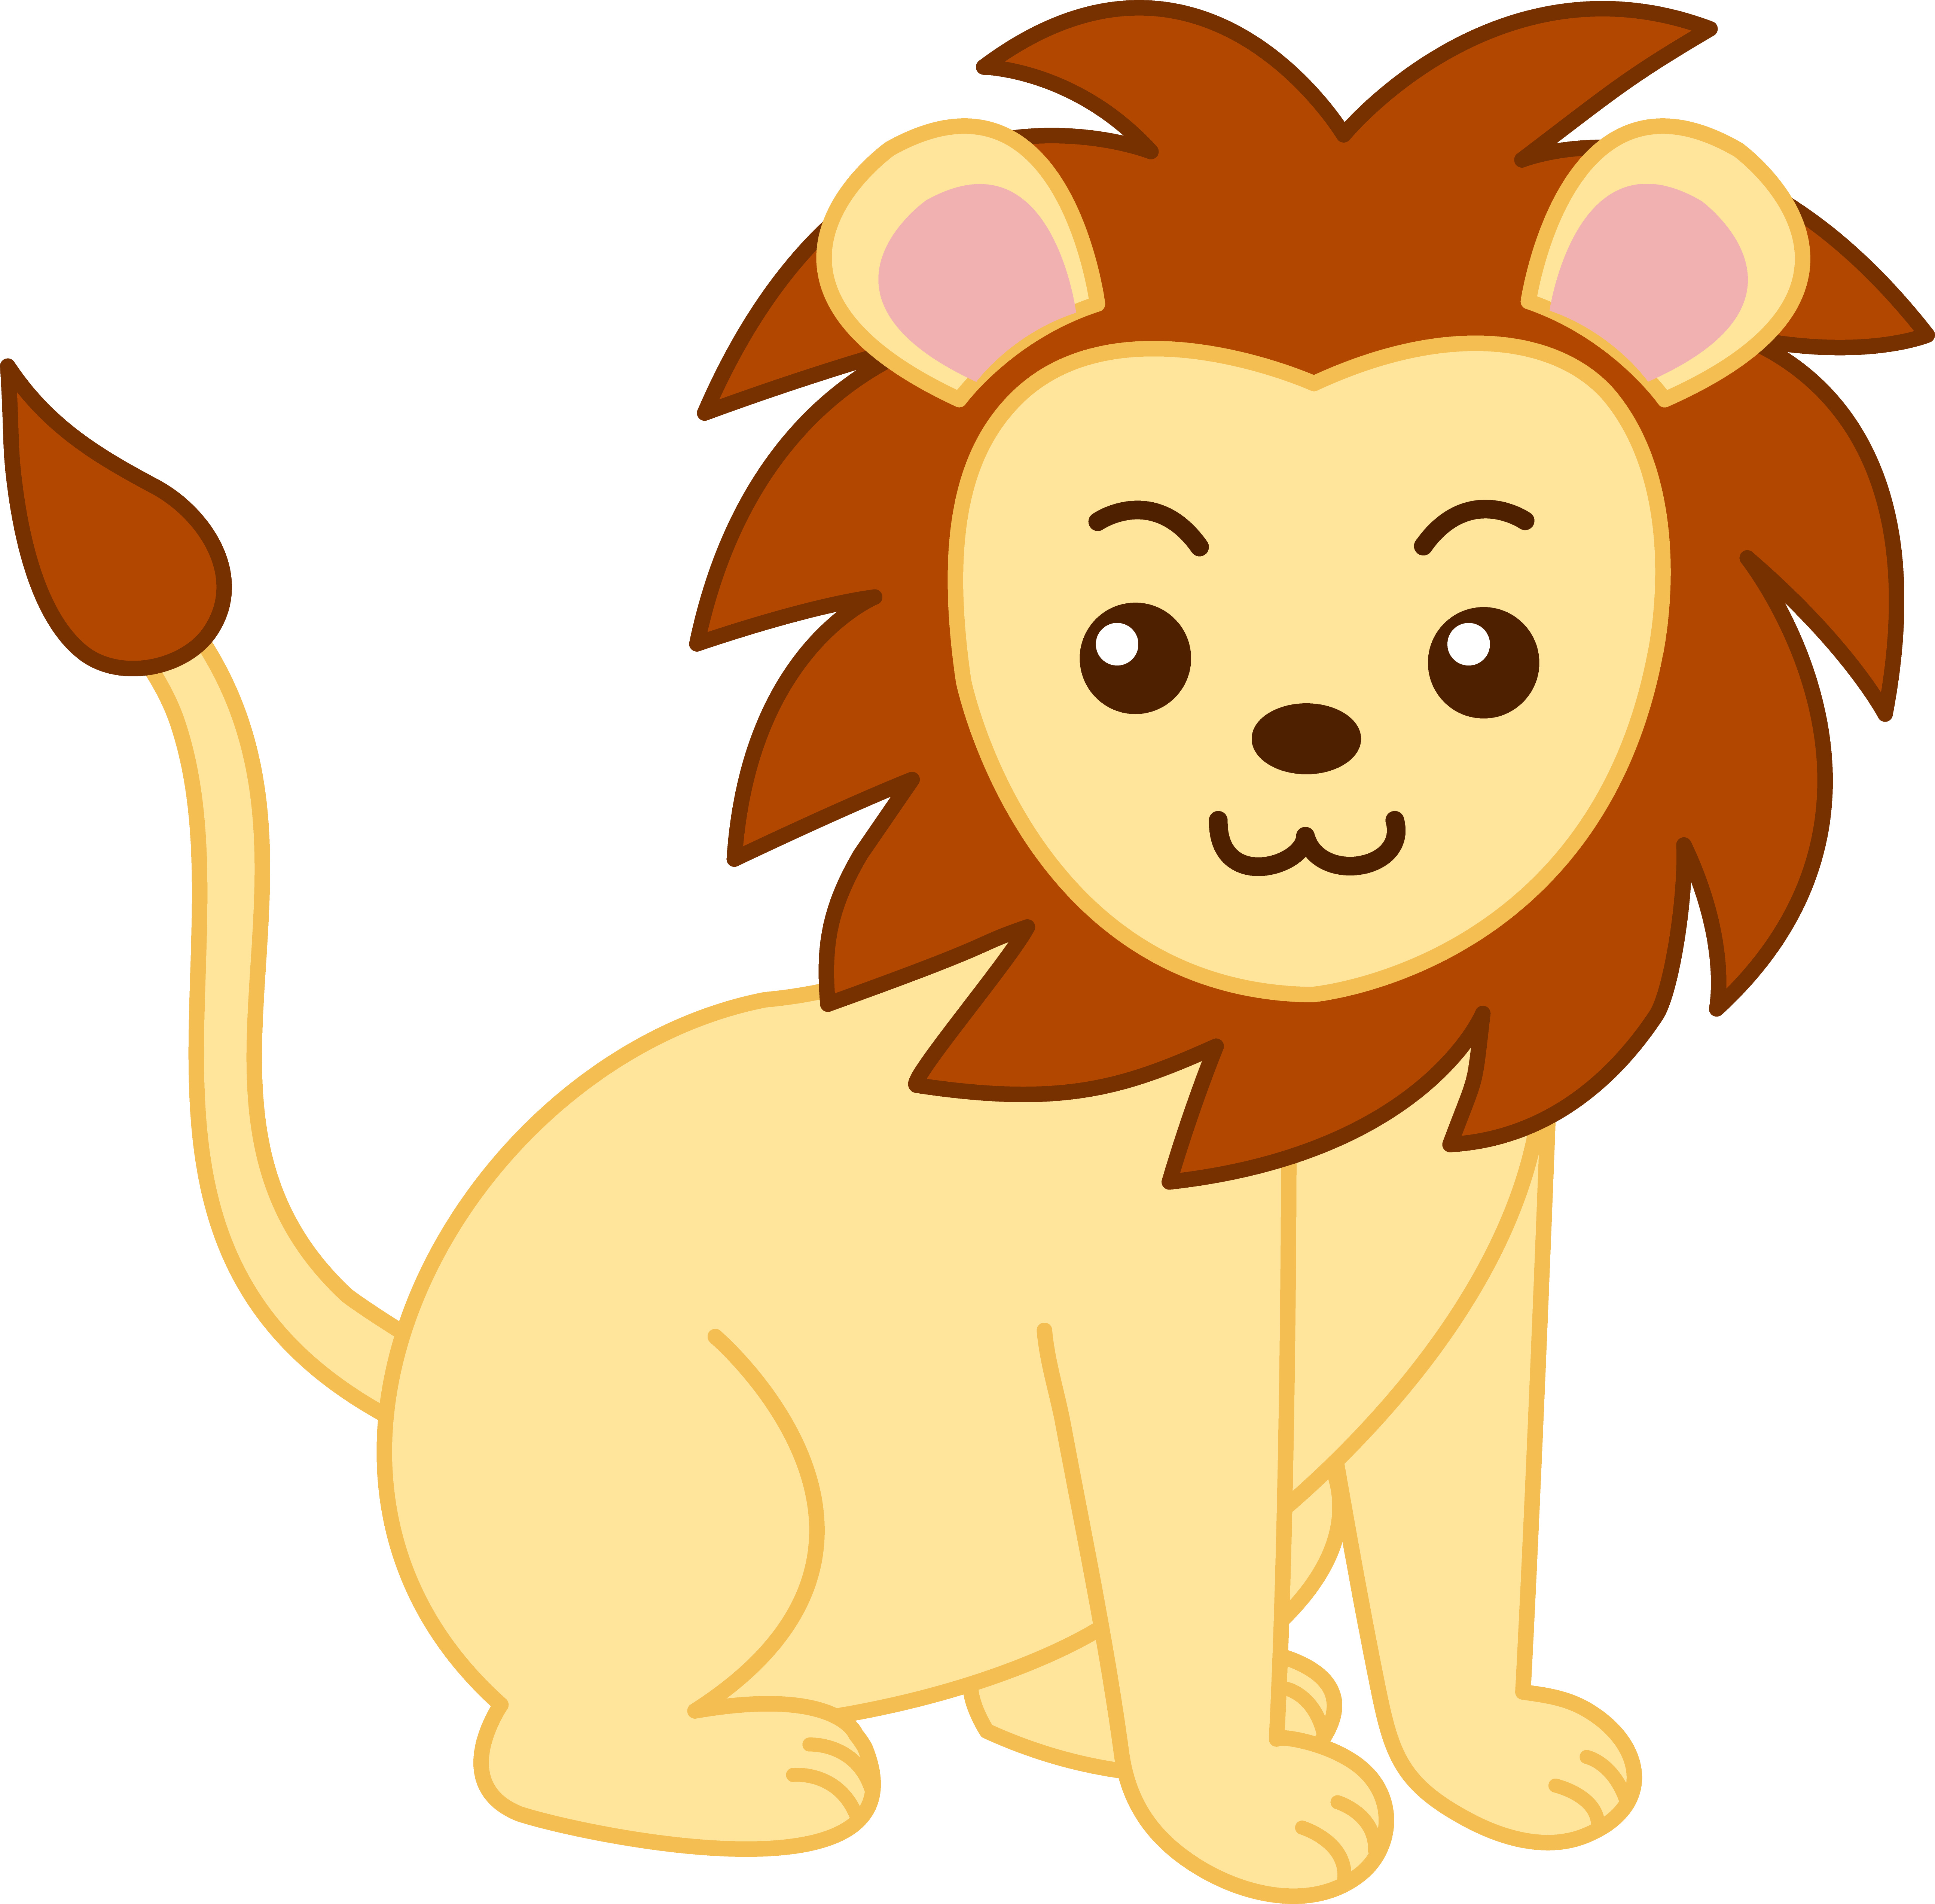 Clipart Animals | Clipart Library - Free-Clipart Animals | Clipart library - Free Clipart Images-5